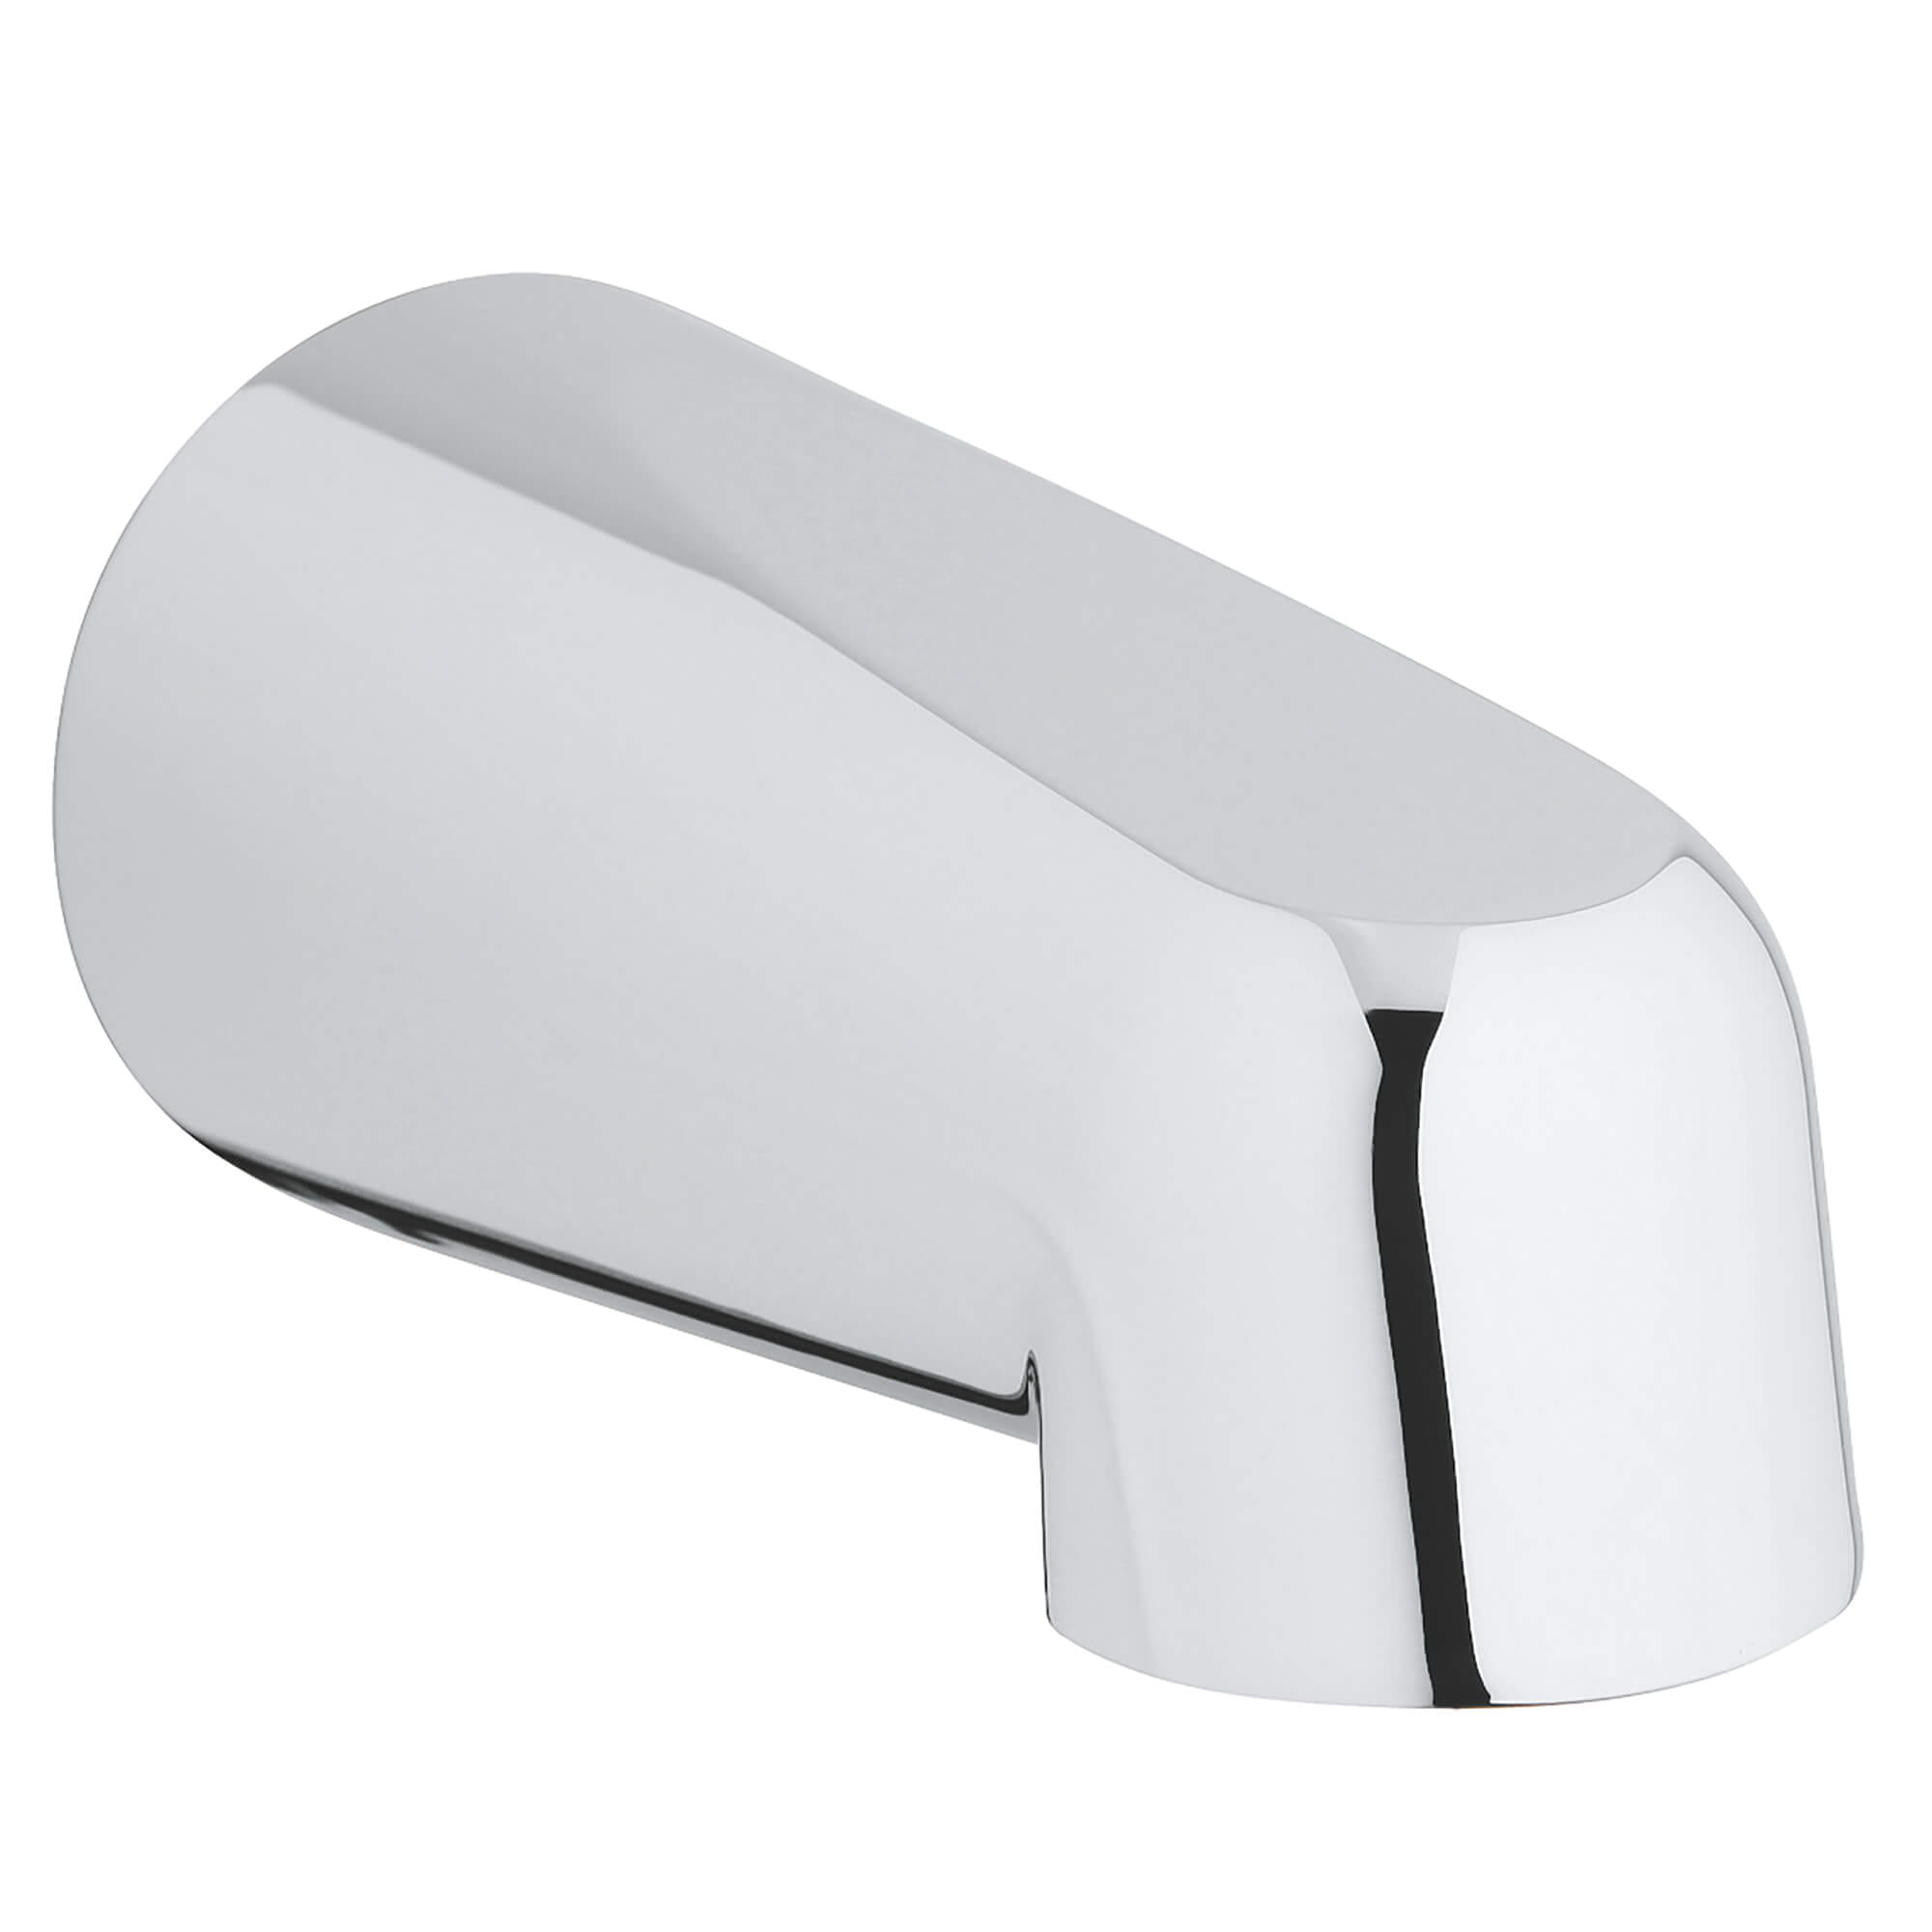 UNIVERSAL (GROHE)  TUB SPOUT Model: 13551000-product-img